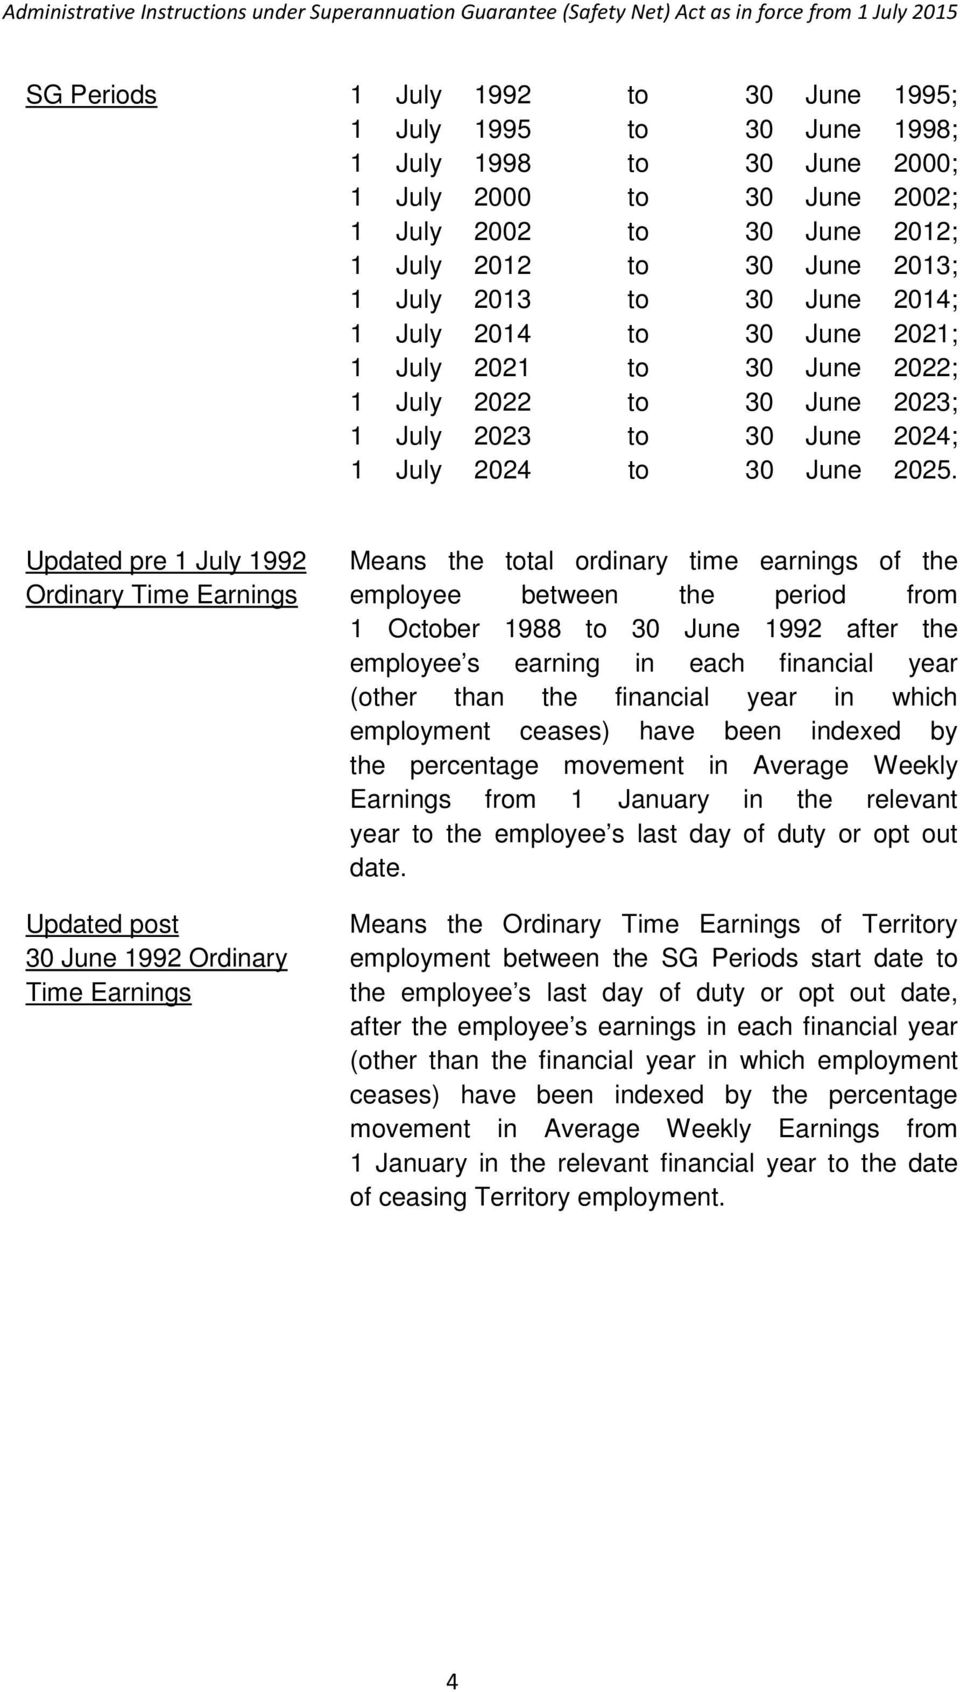 Updated pre 1 July 1992 Means the total ordinary time earnings of the Ordinary Time Earnings employee between the period from 1 October 1988 to 30 June 1992 after the employee s earning in each